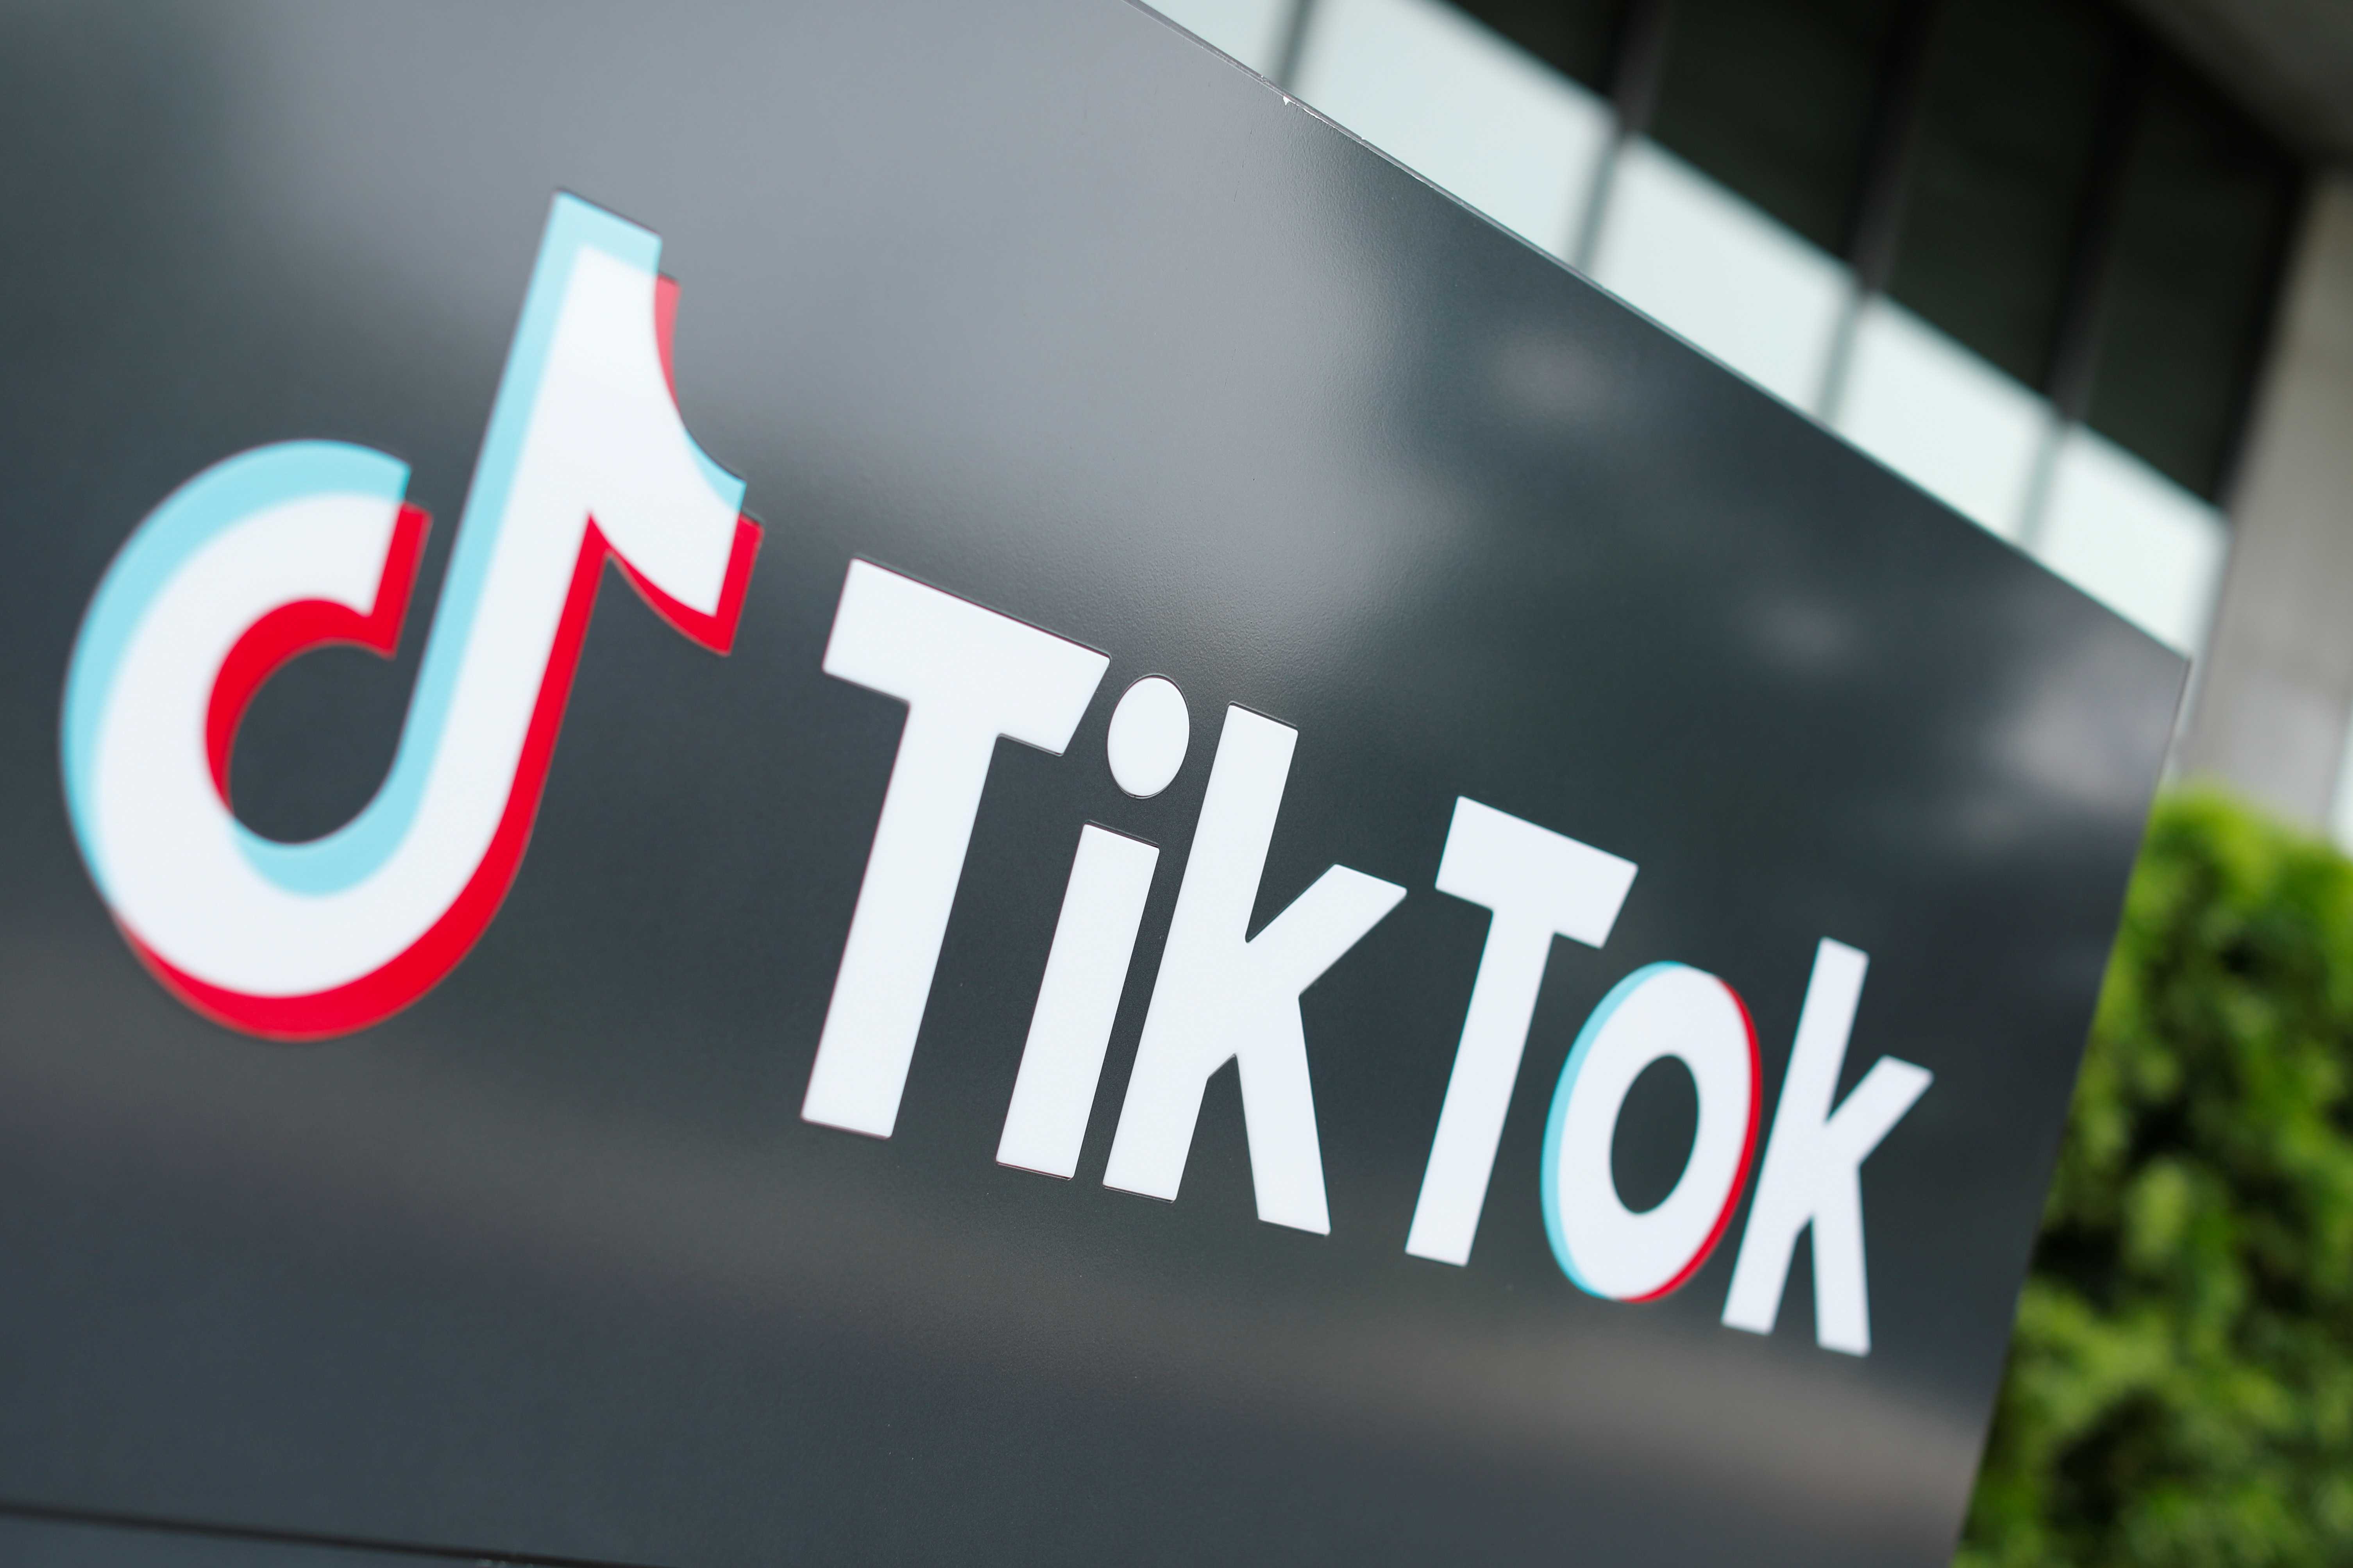 EU to review TikTok's Terms of Service after child safety complaints